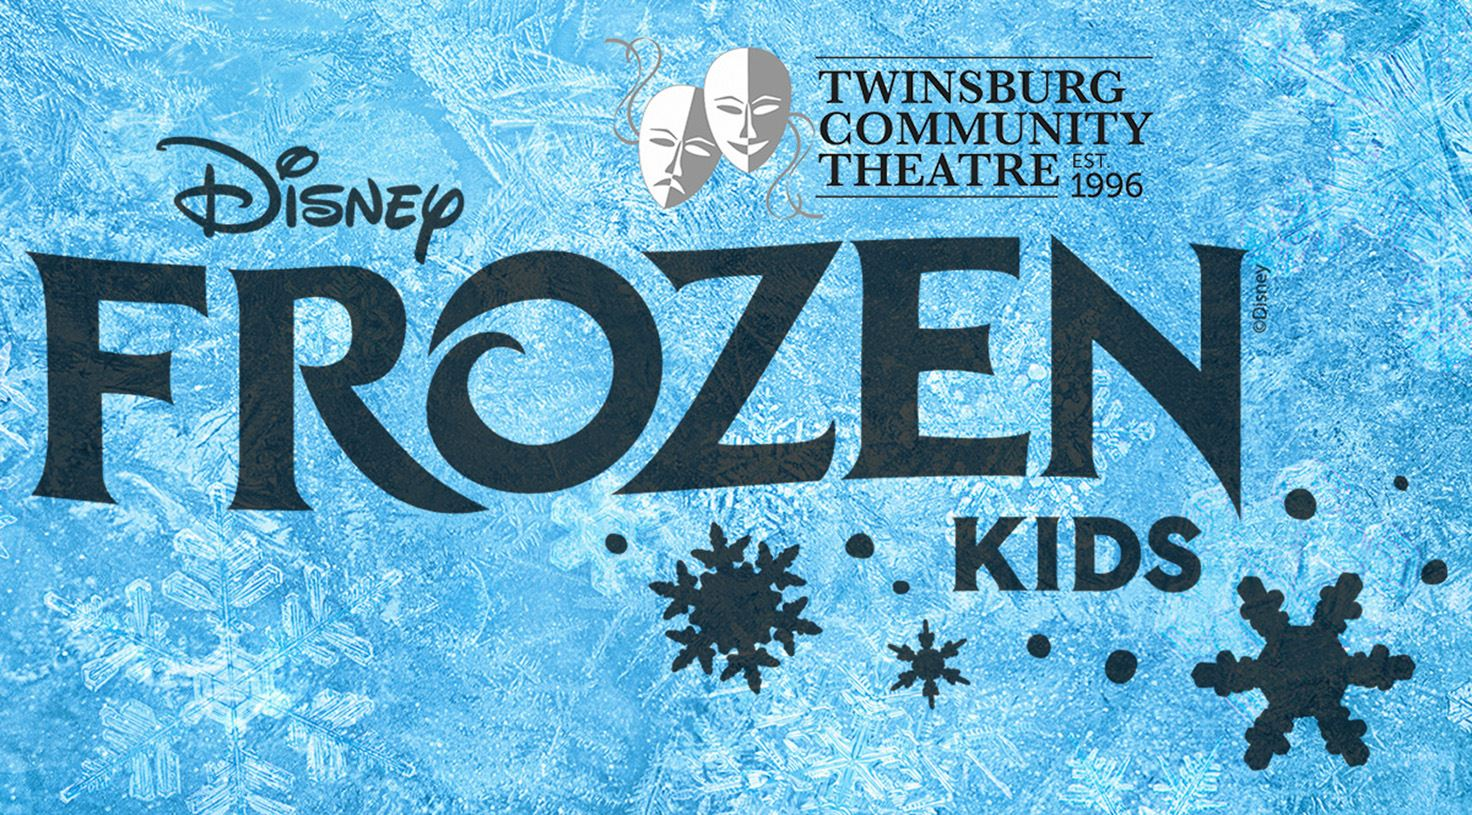 Frozen cast prepares for heartwarming production  Twinsburg Community Theatre presents Frozen Kids o